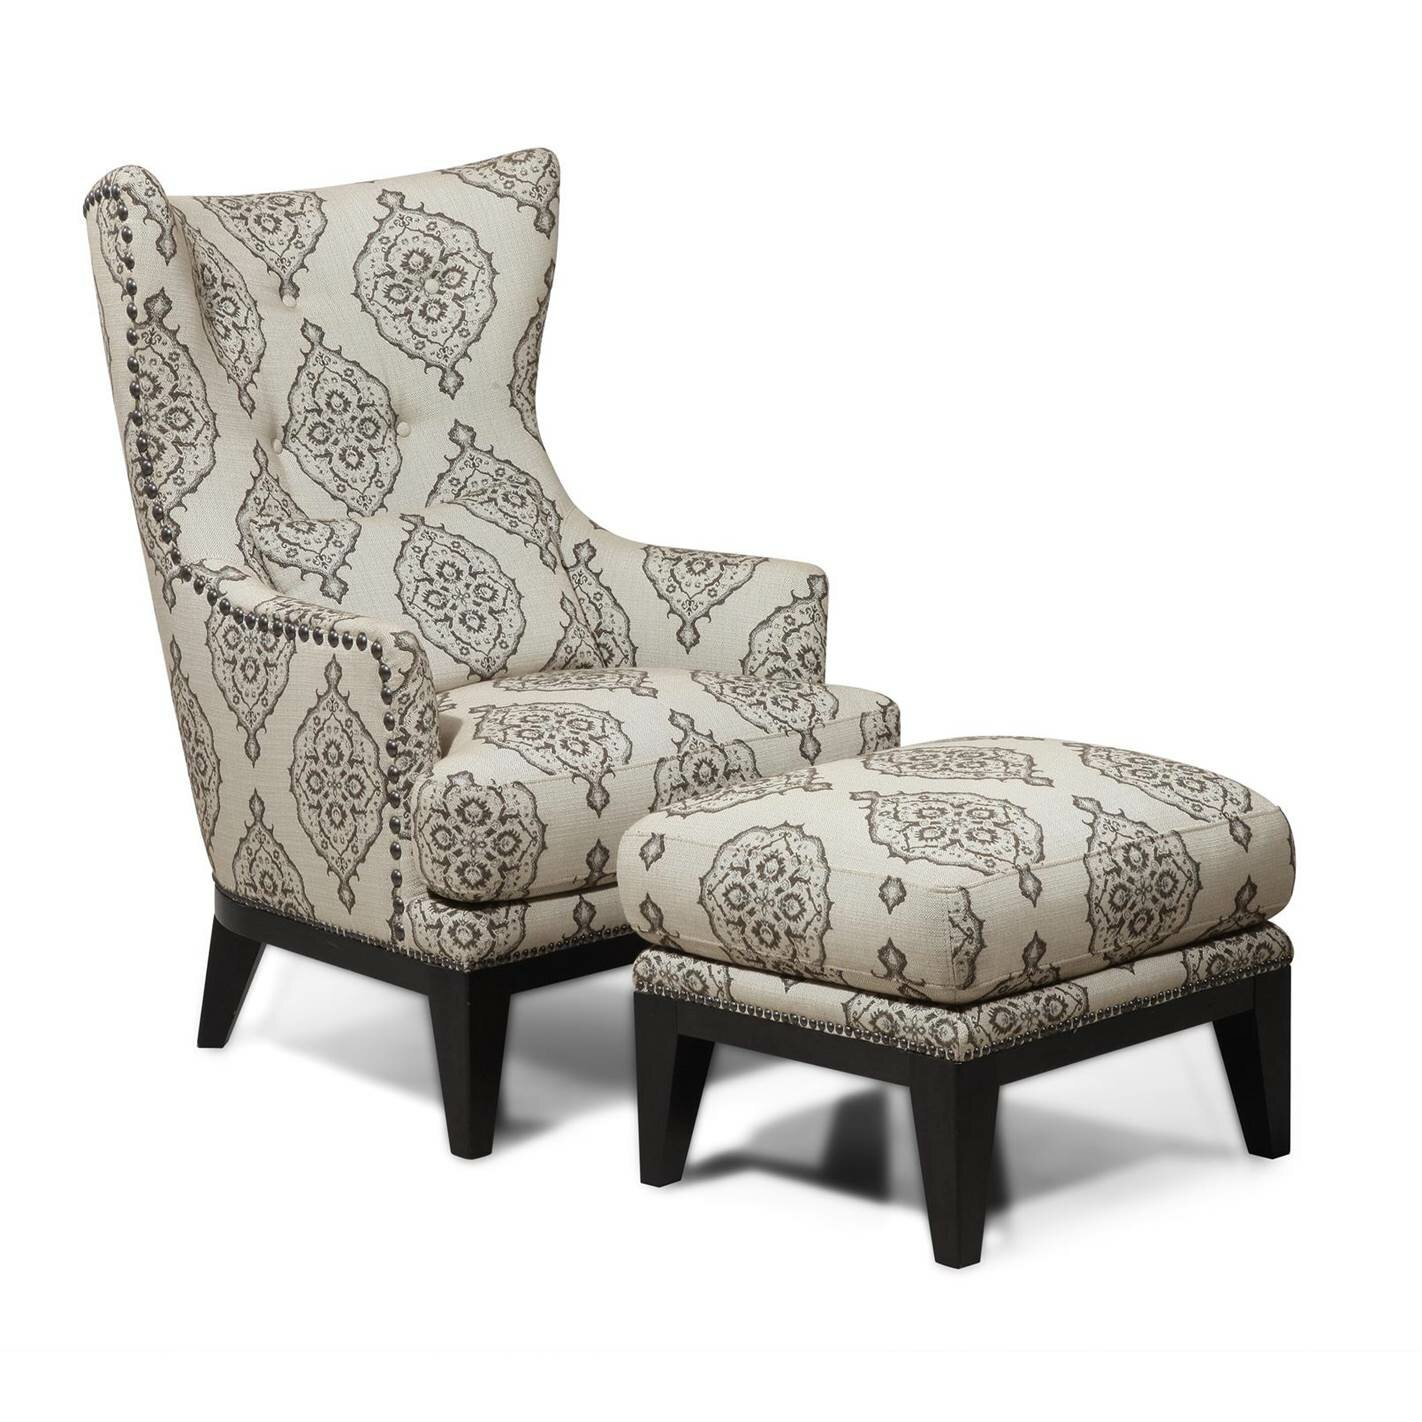 Brewster Wingback Chair & Ottoman